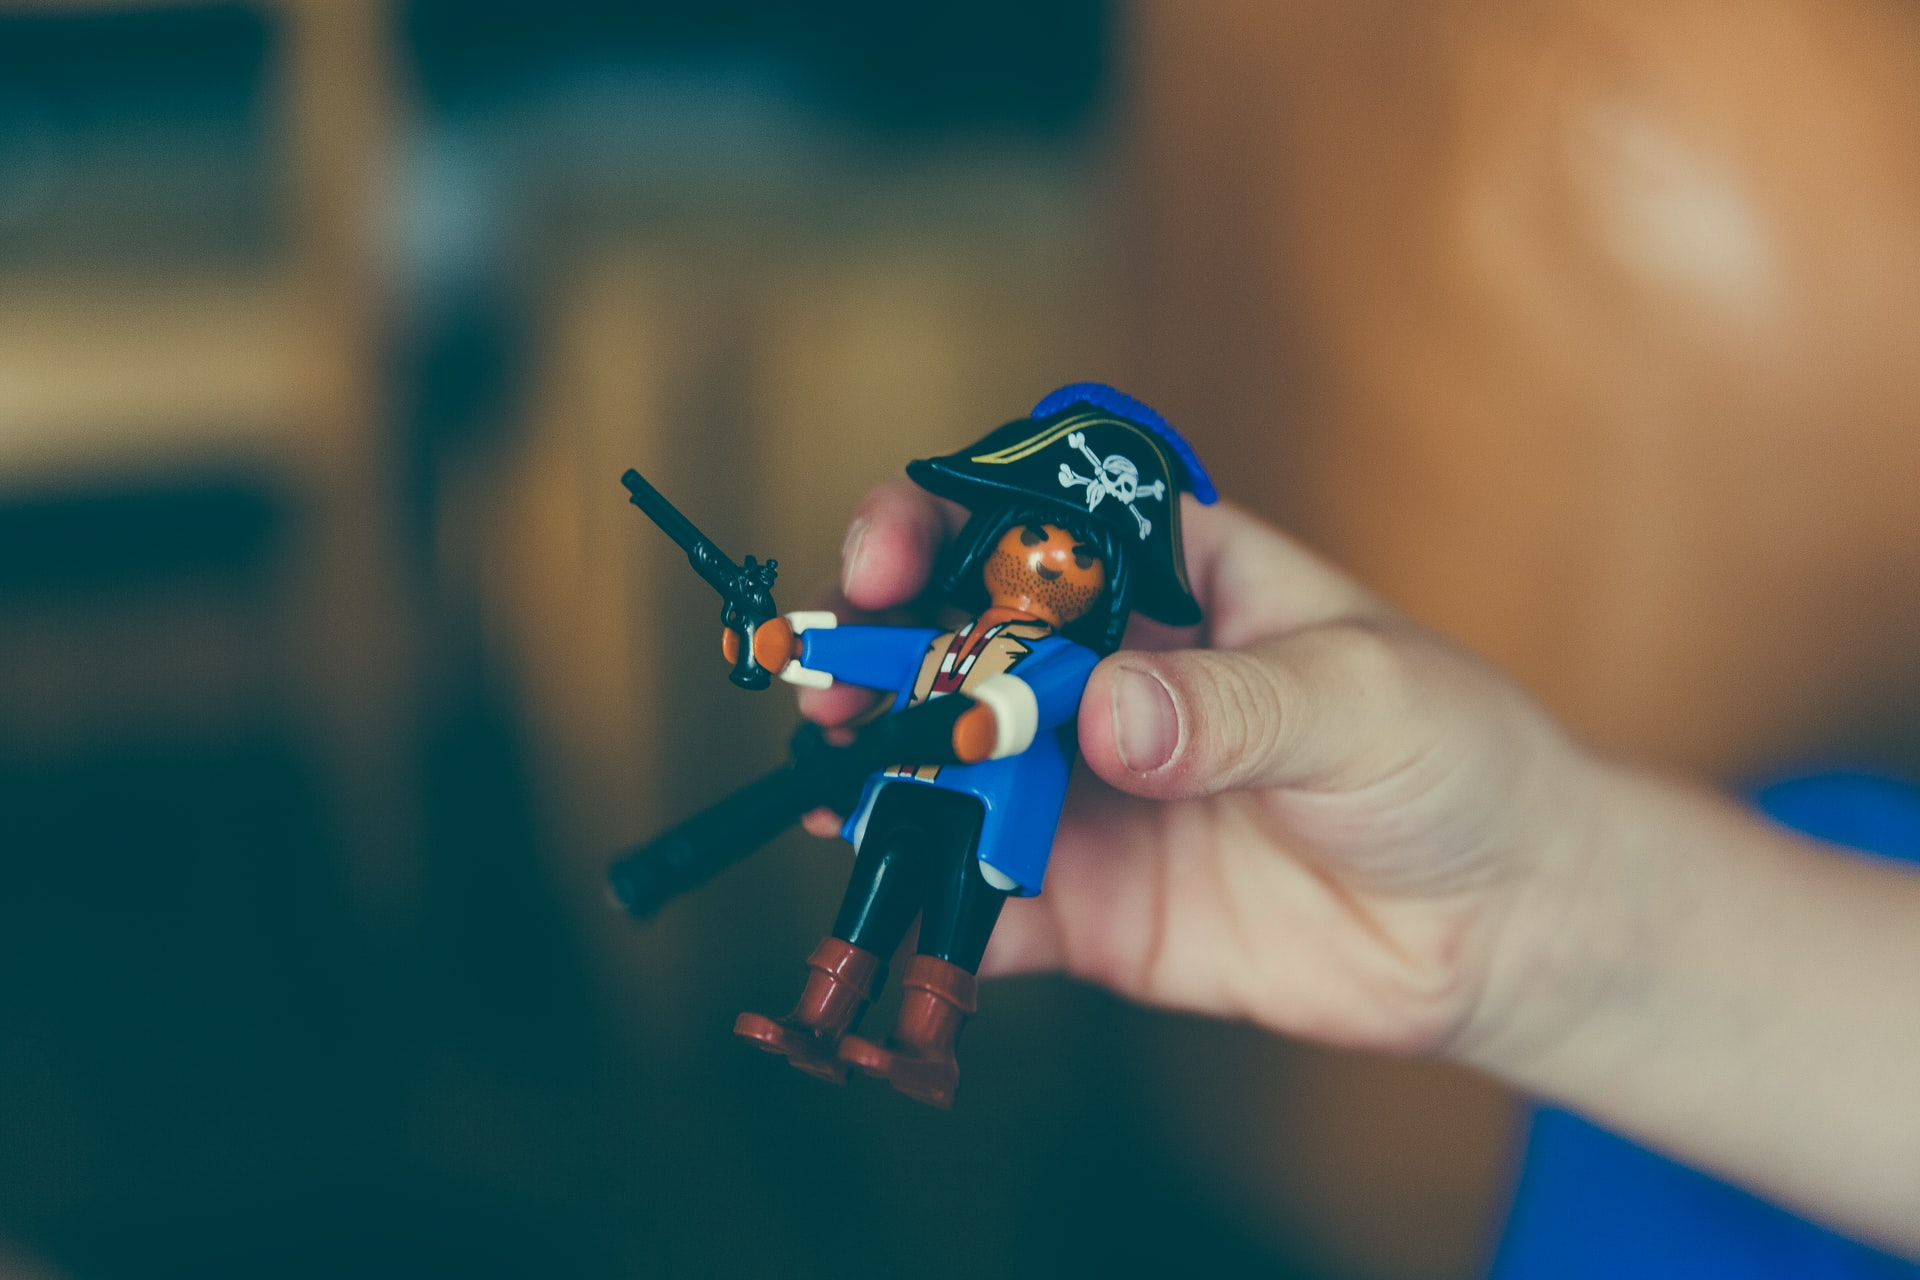 Planning a pirate party